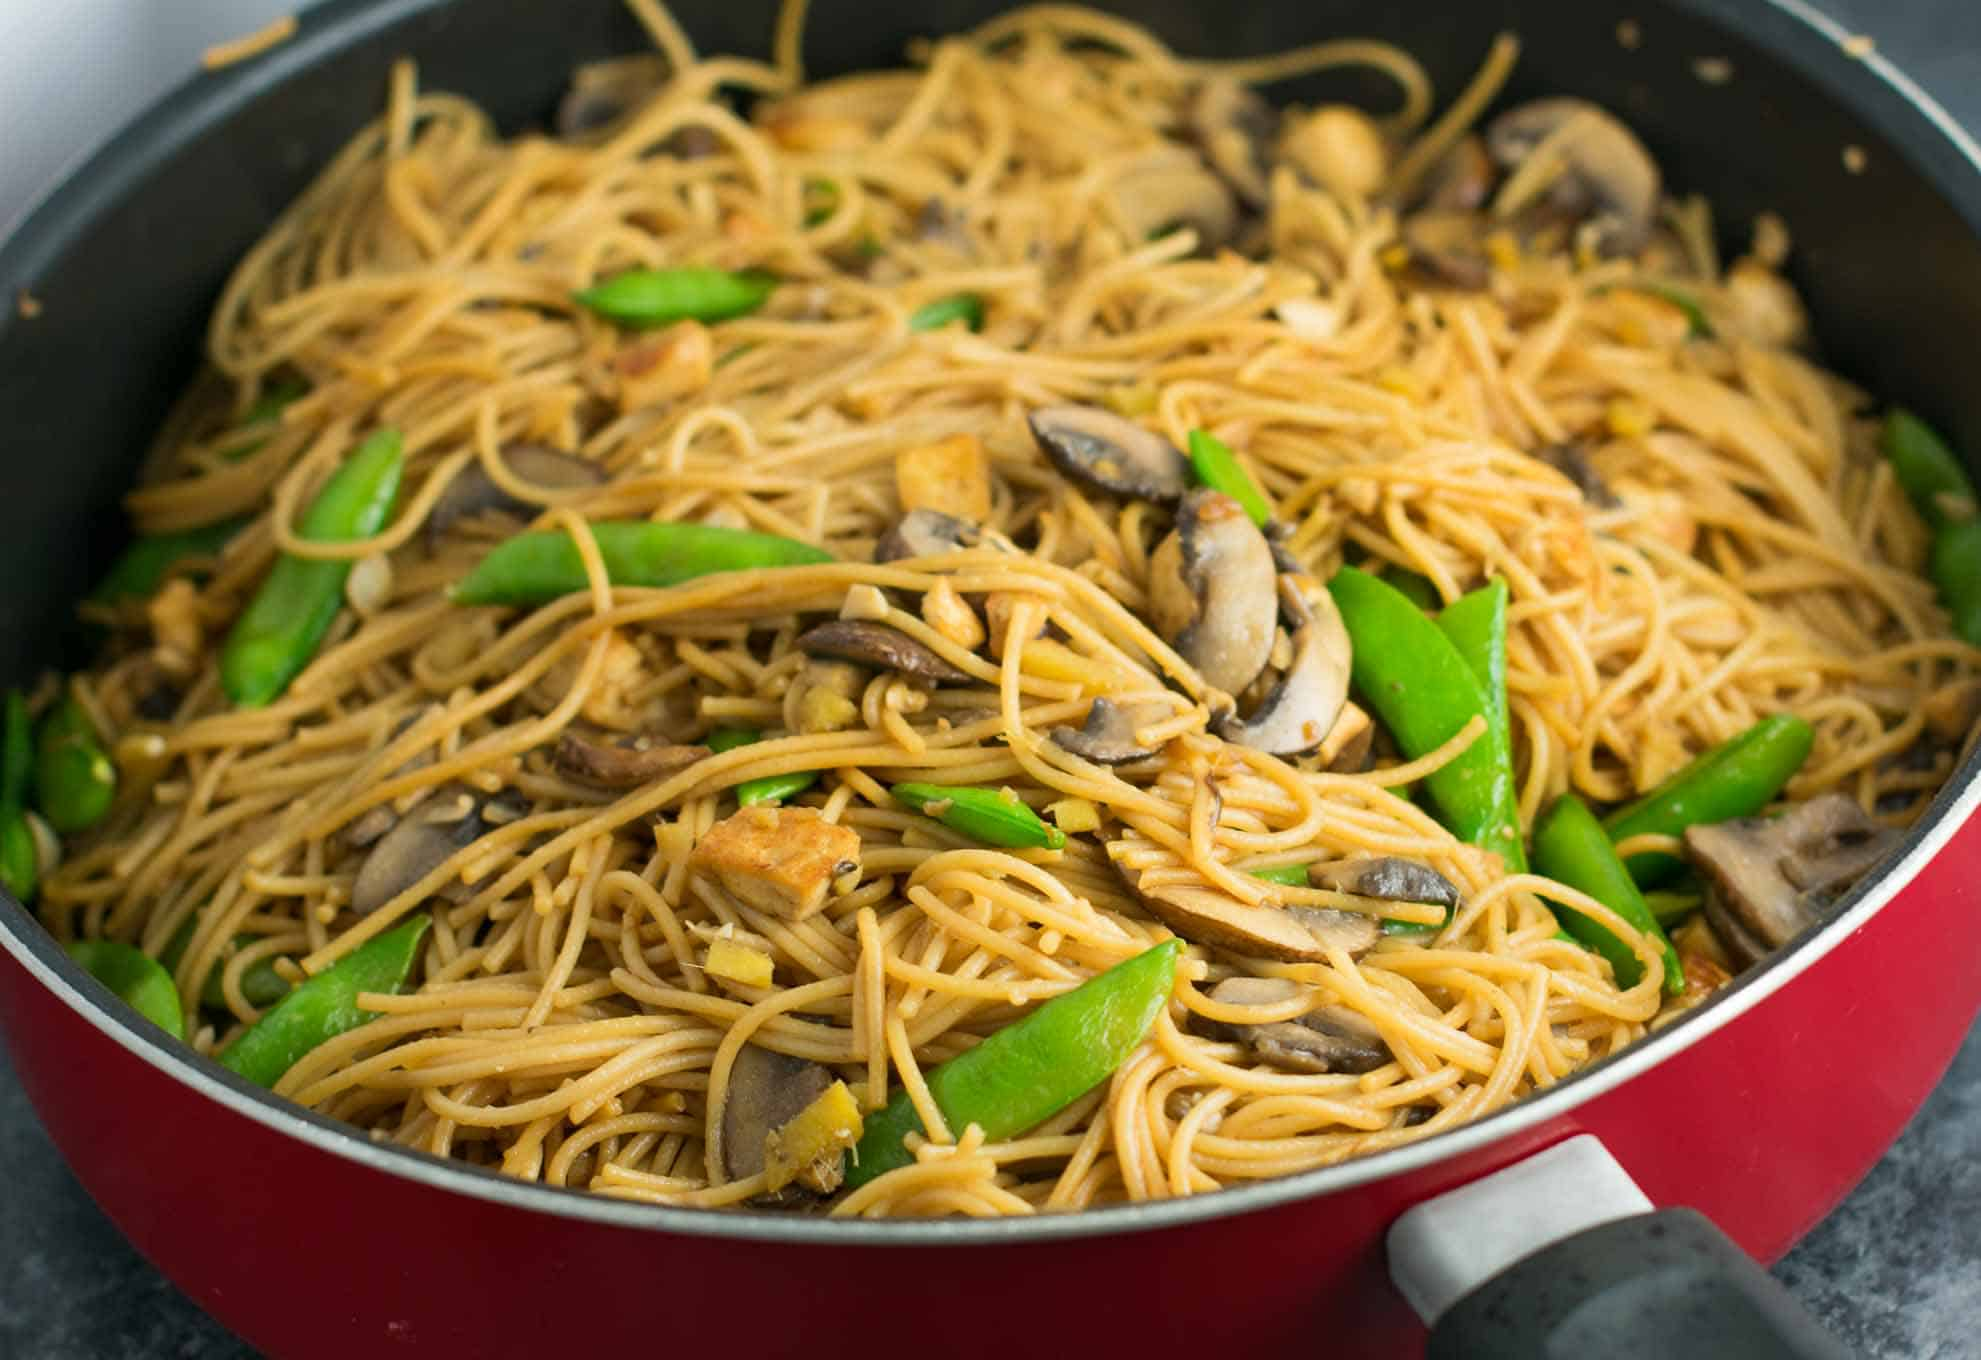 Easy Tofu Lo Mein recipe with fresh vegetables and a simple sauce. Ready in minutes and packed full of protein! #tofu #lomein #vegan #vegetarian